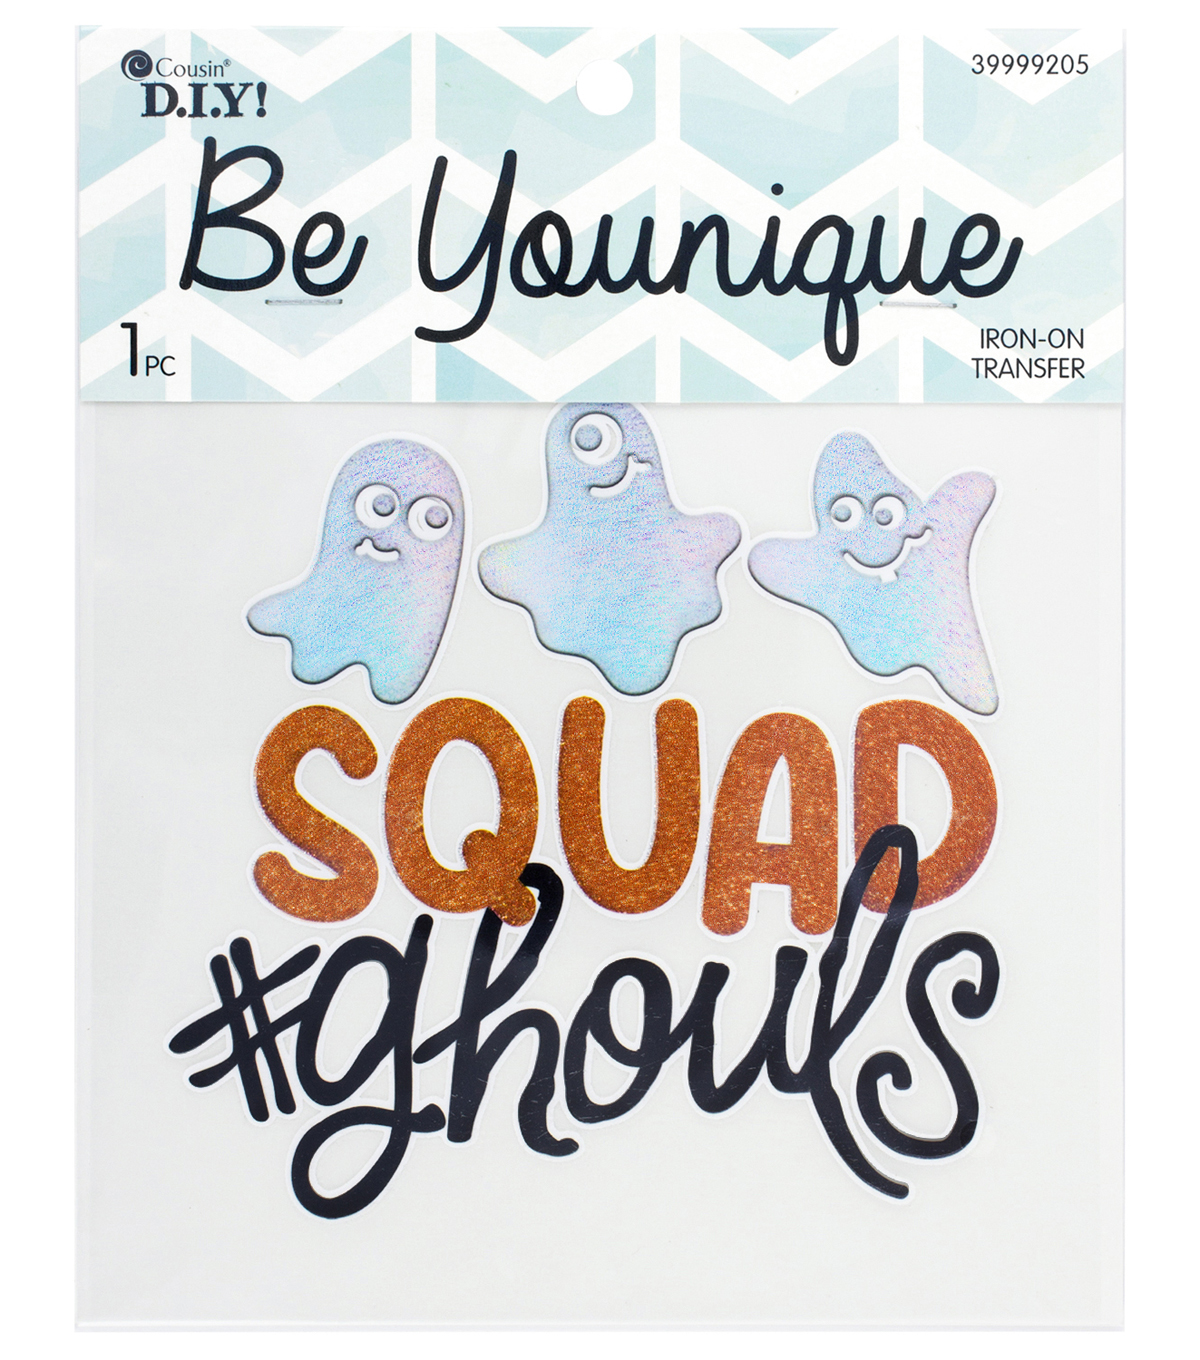 Cousin® DIY Be Younique Iron-On Transfer-Squad Ghouls